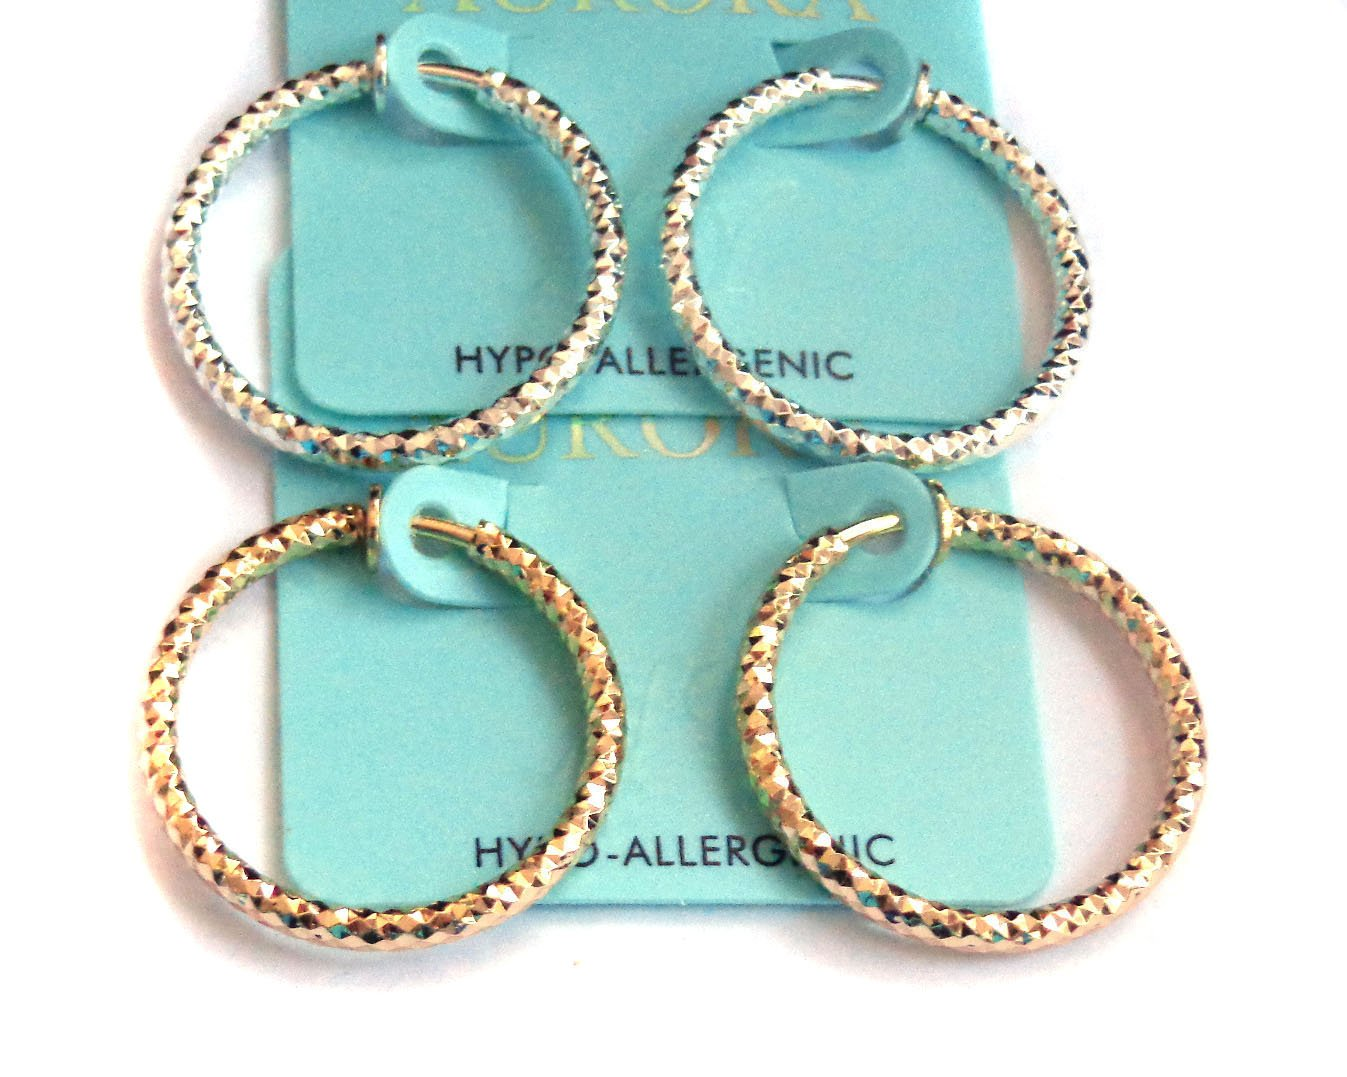 Clip-on Earrings Dia Cut Hoop Gold Or Silver Tone 1 inch Hoops Hypo-Allergenic (silver)